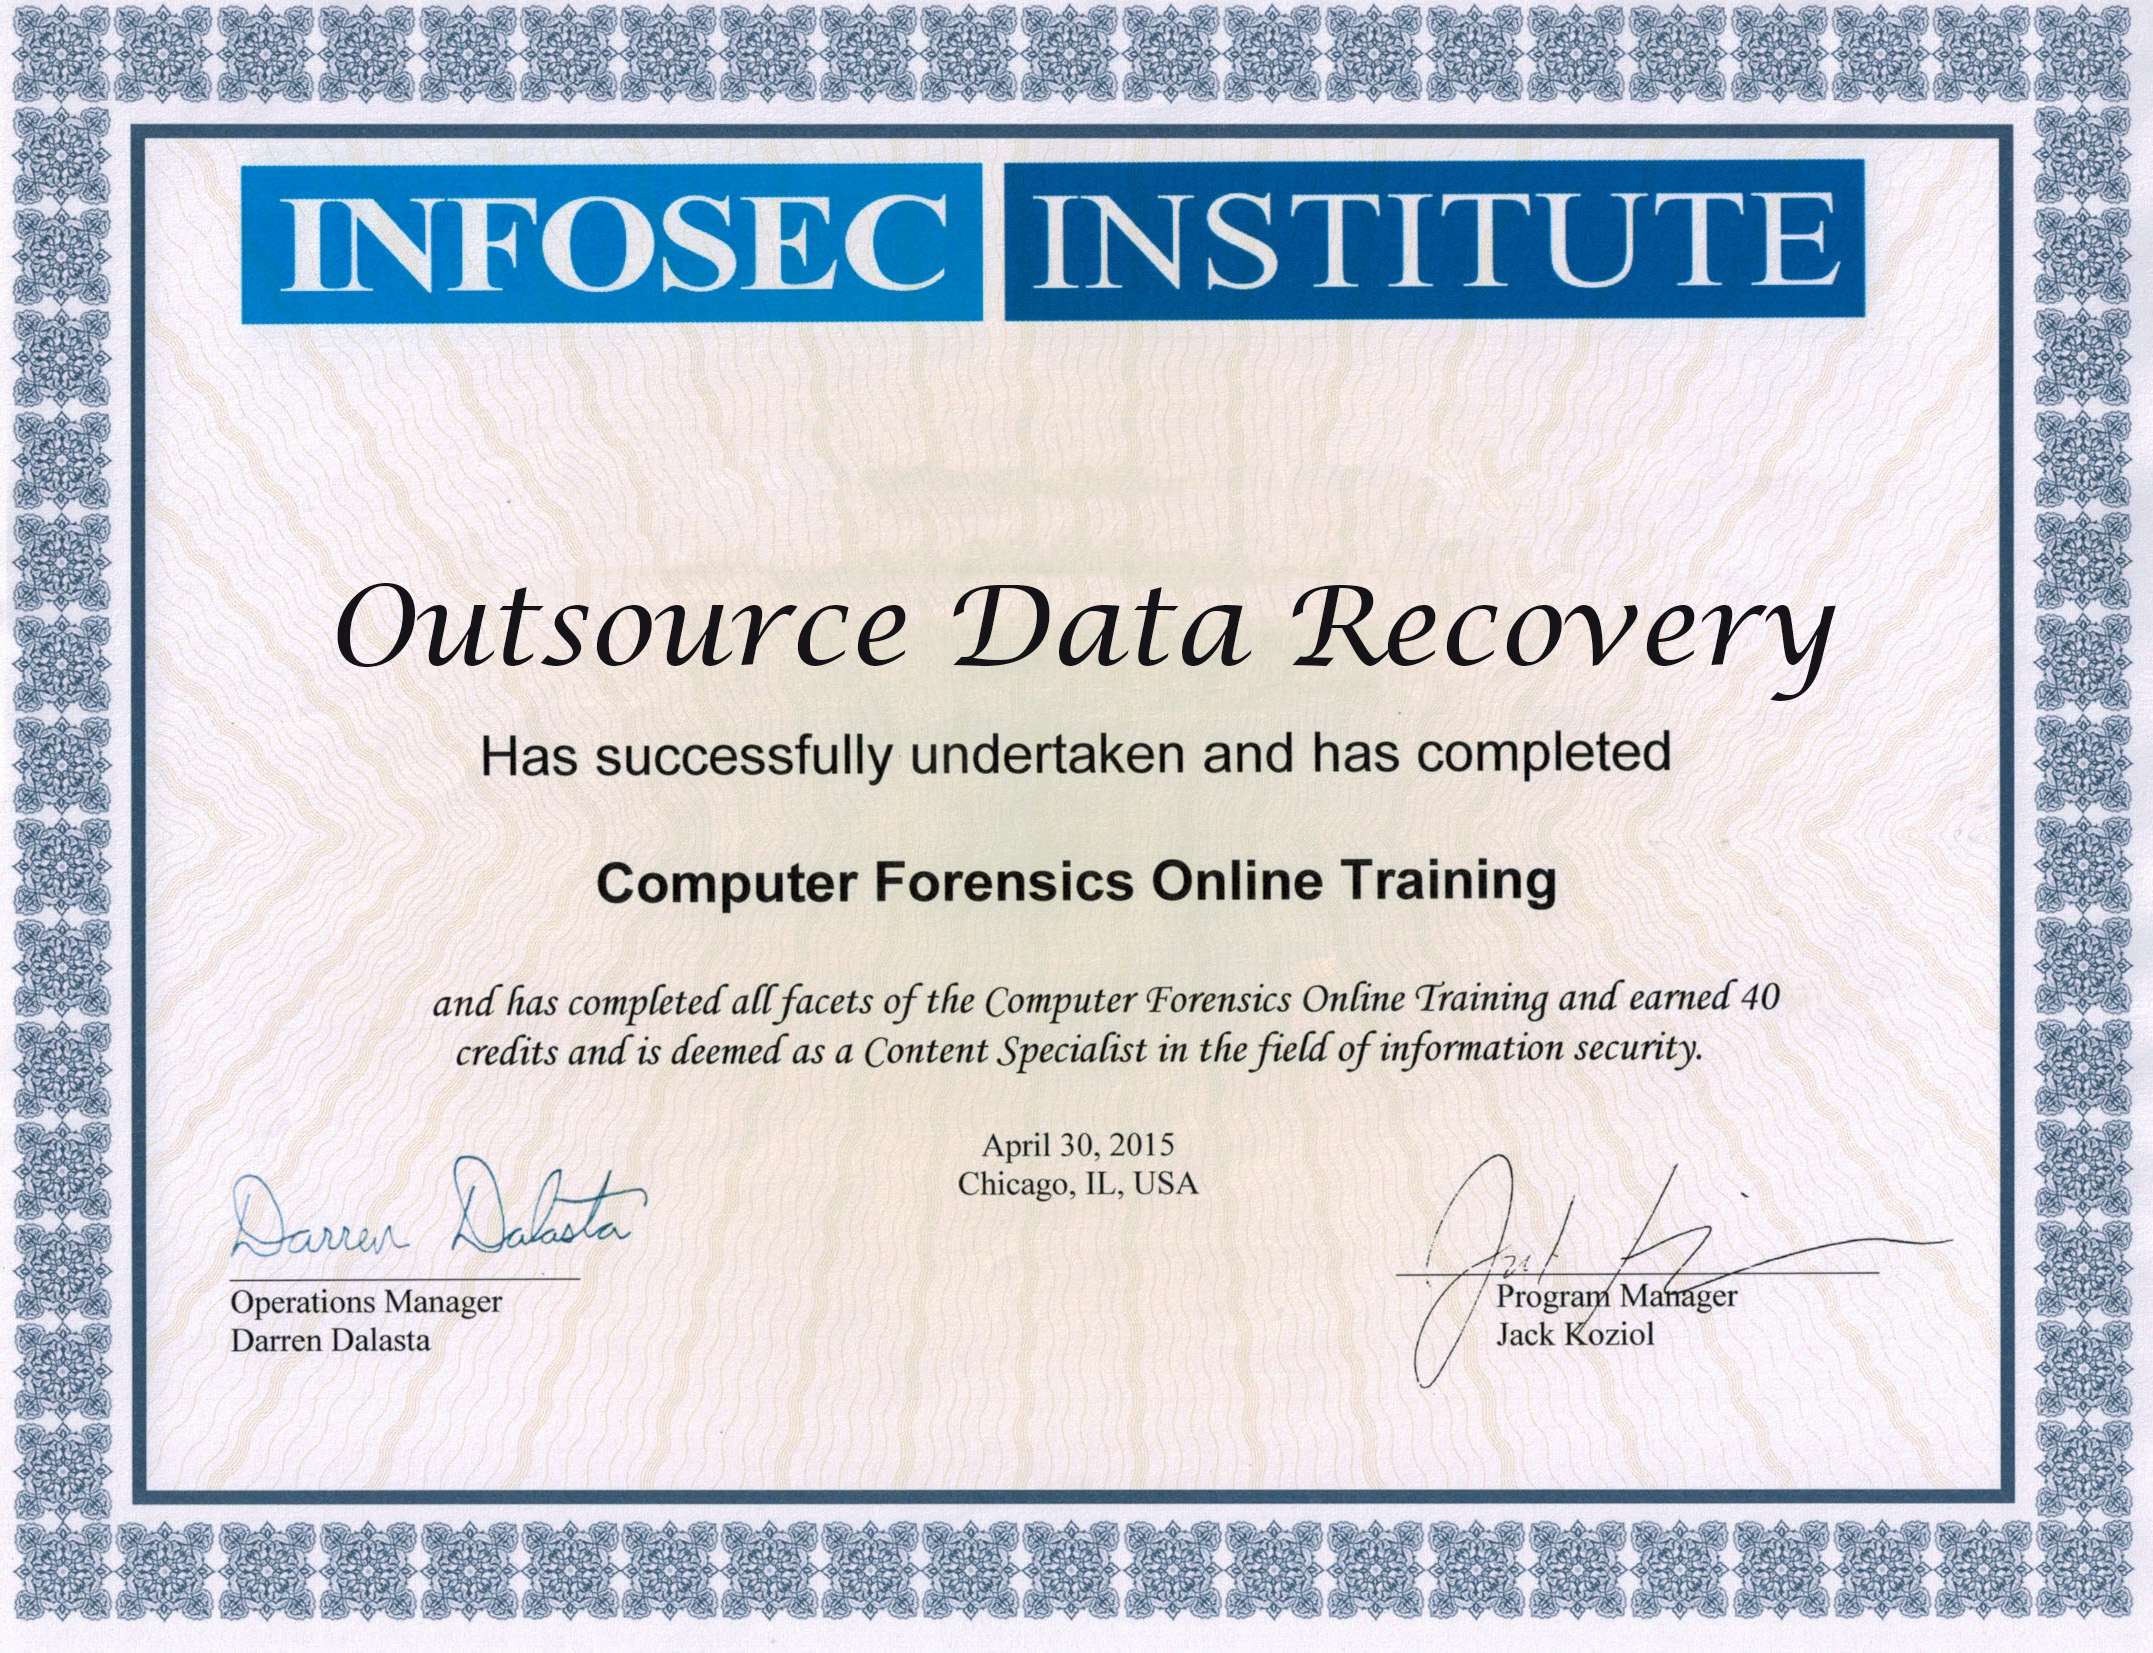 Outsource Data Recovery Forensics Certification from INFOSEC Institute